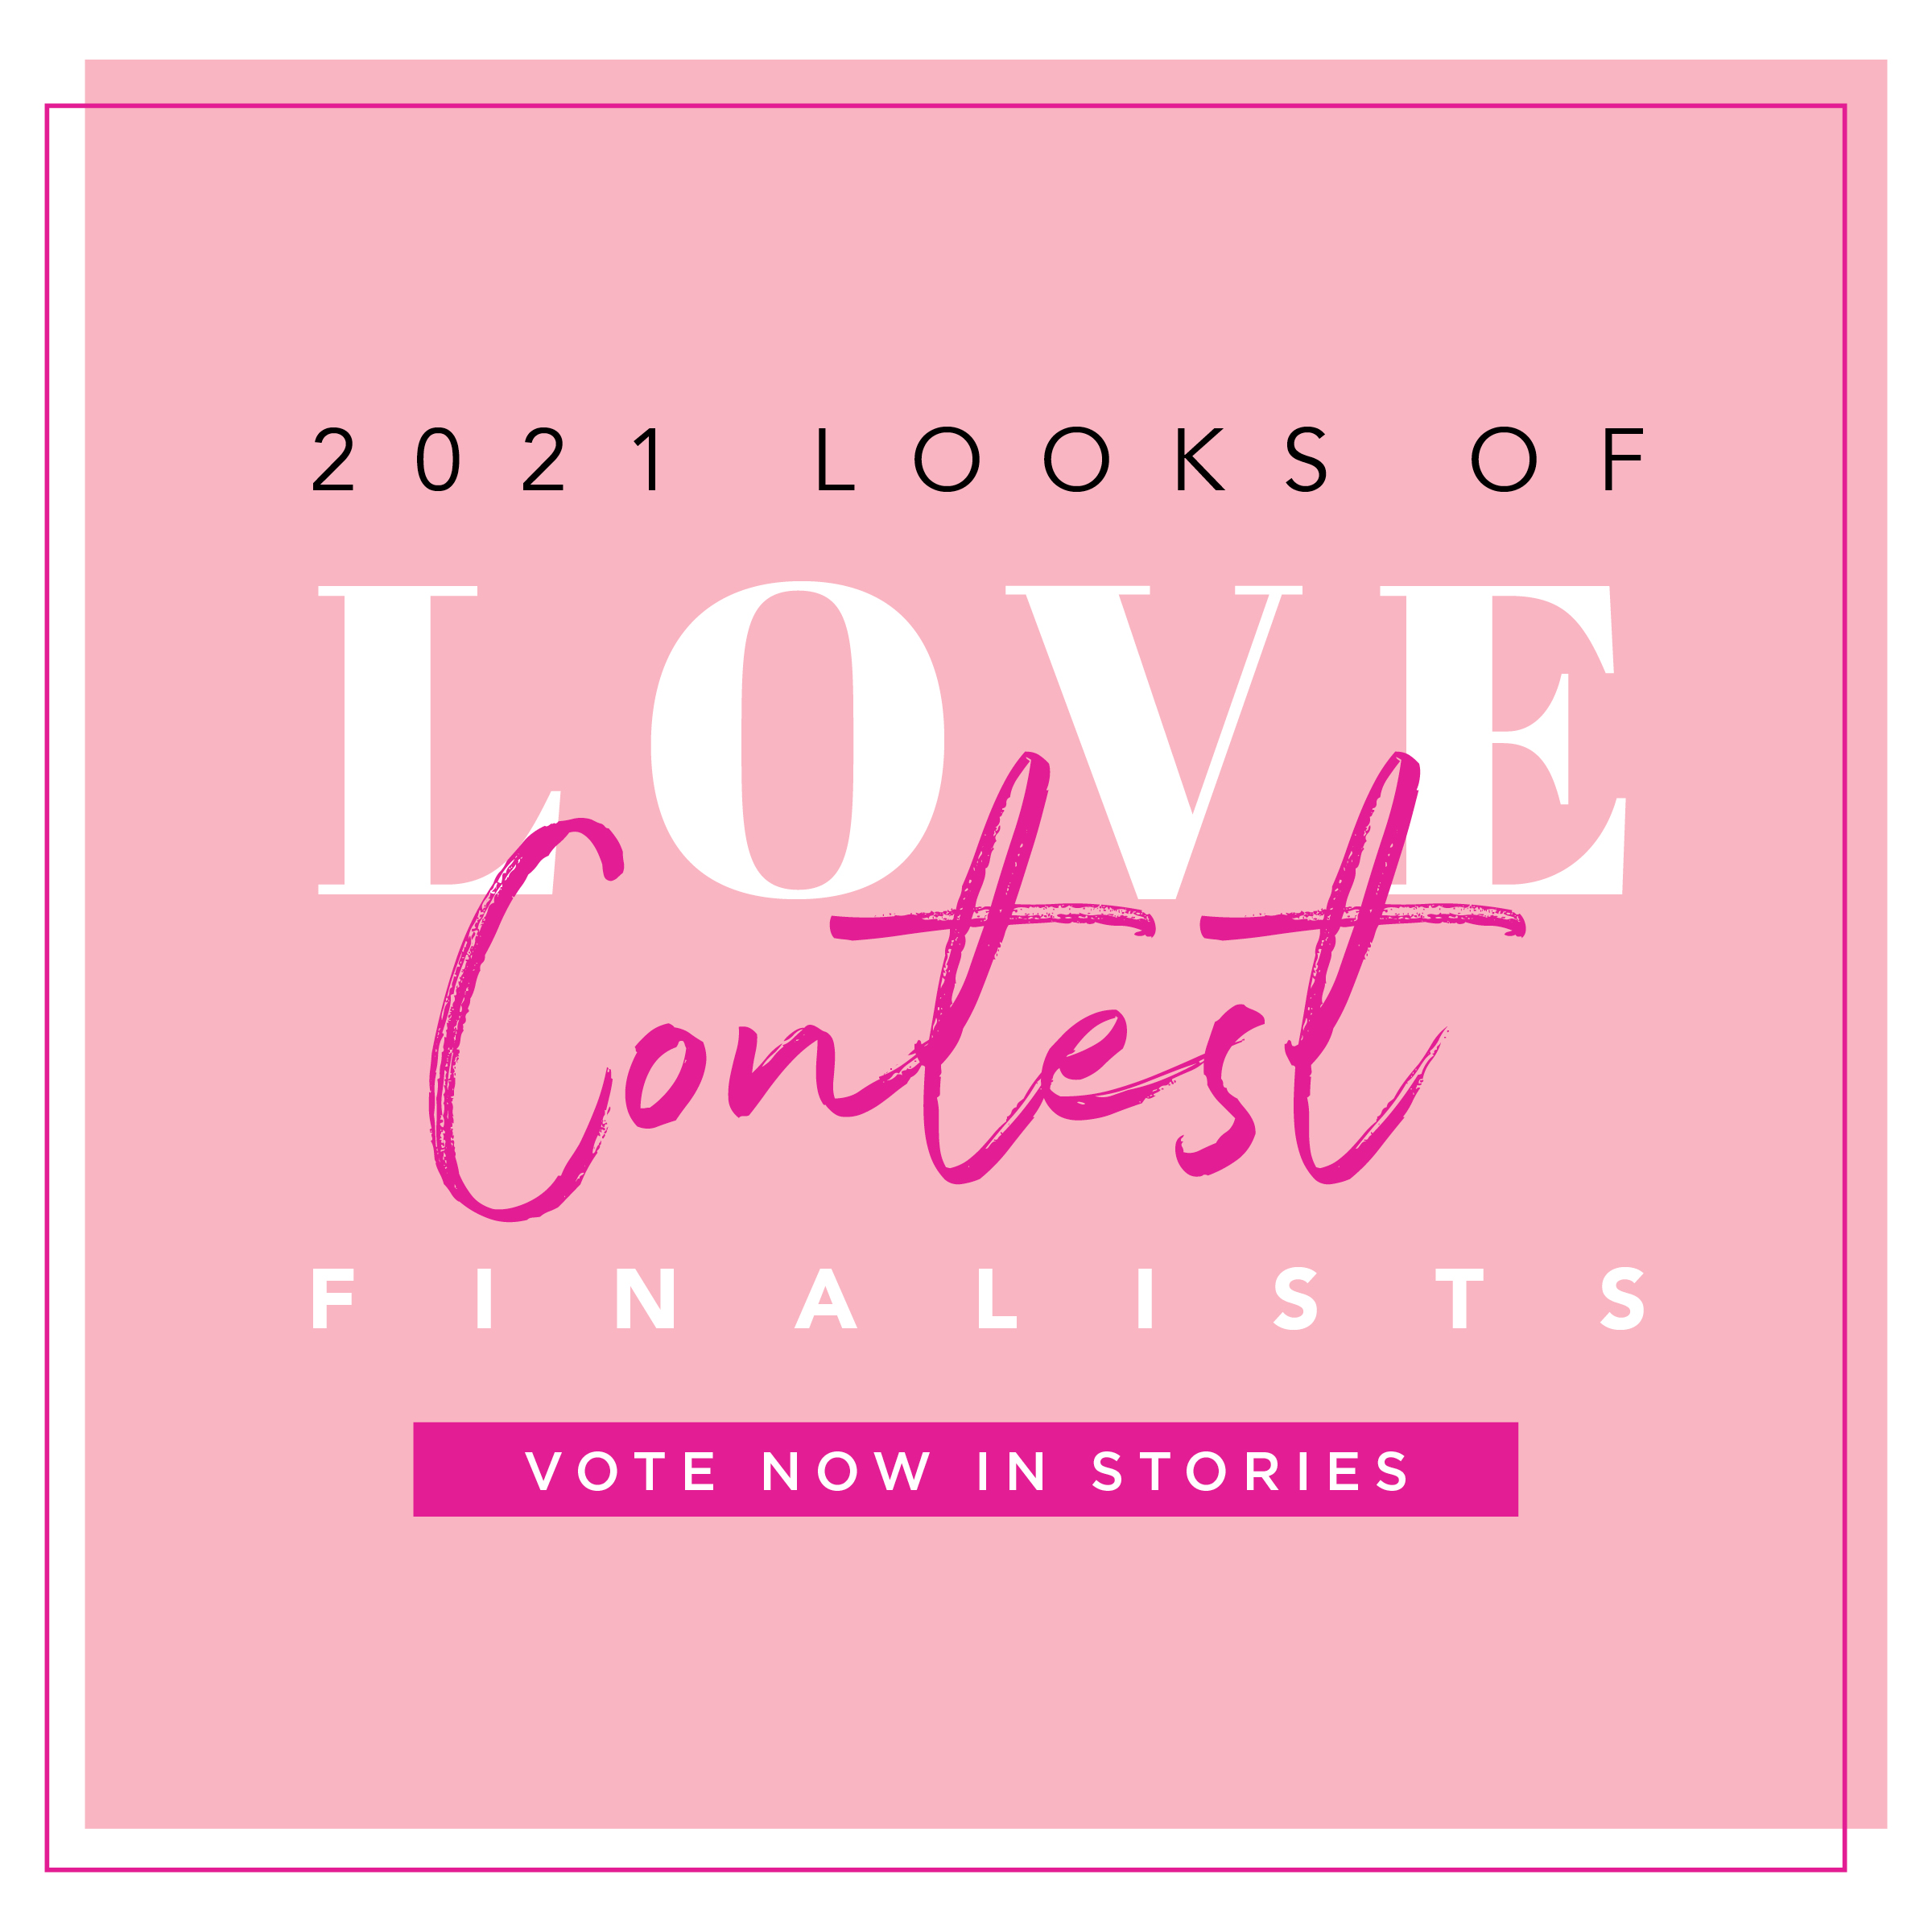 LooksofLove_Graphics_2021_IG_Grid_Finalists